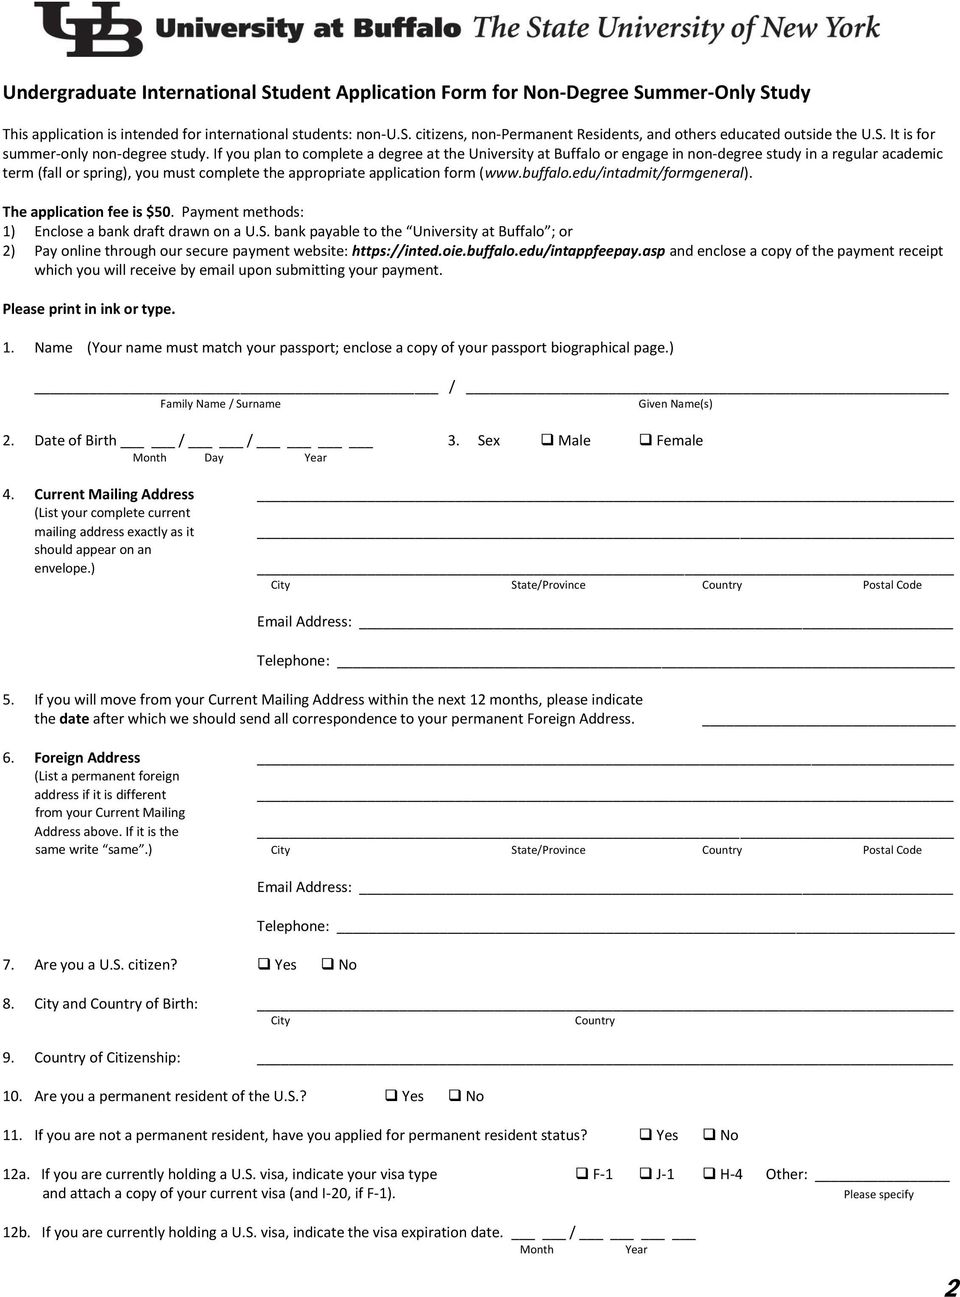 If you plan to complete a degree at the University at Buffalo or engage in non-degree study in a regular academic term (fall or spring), you must complete the appropriate application form (www.